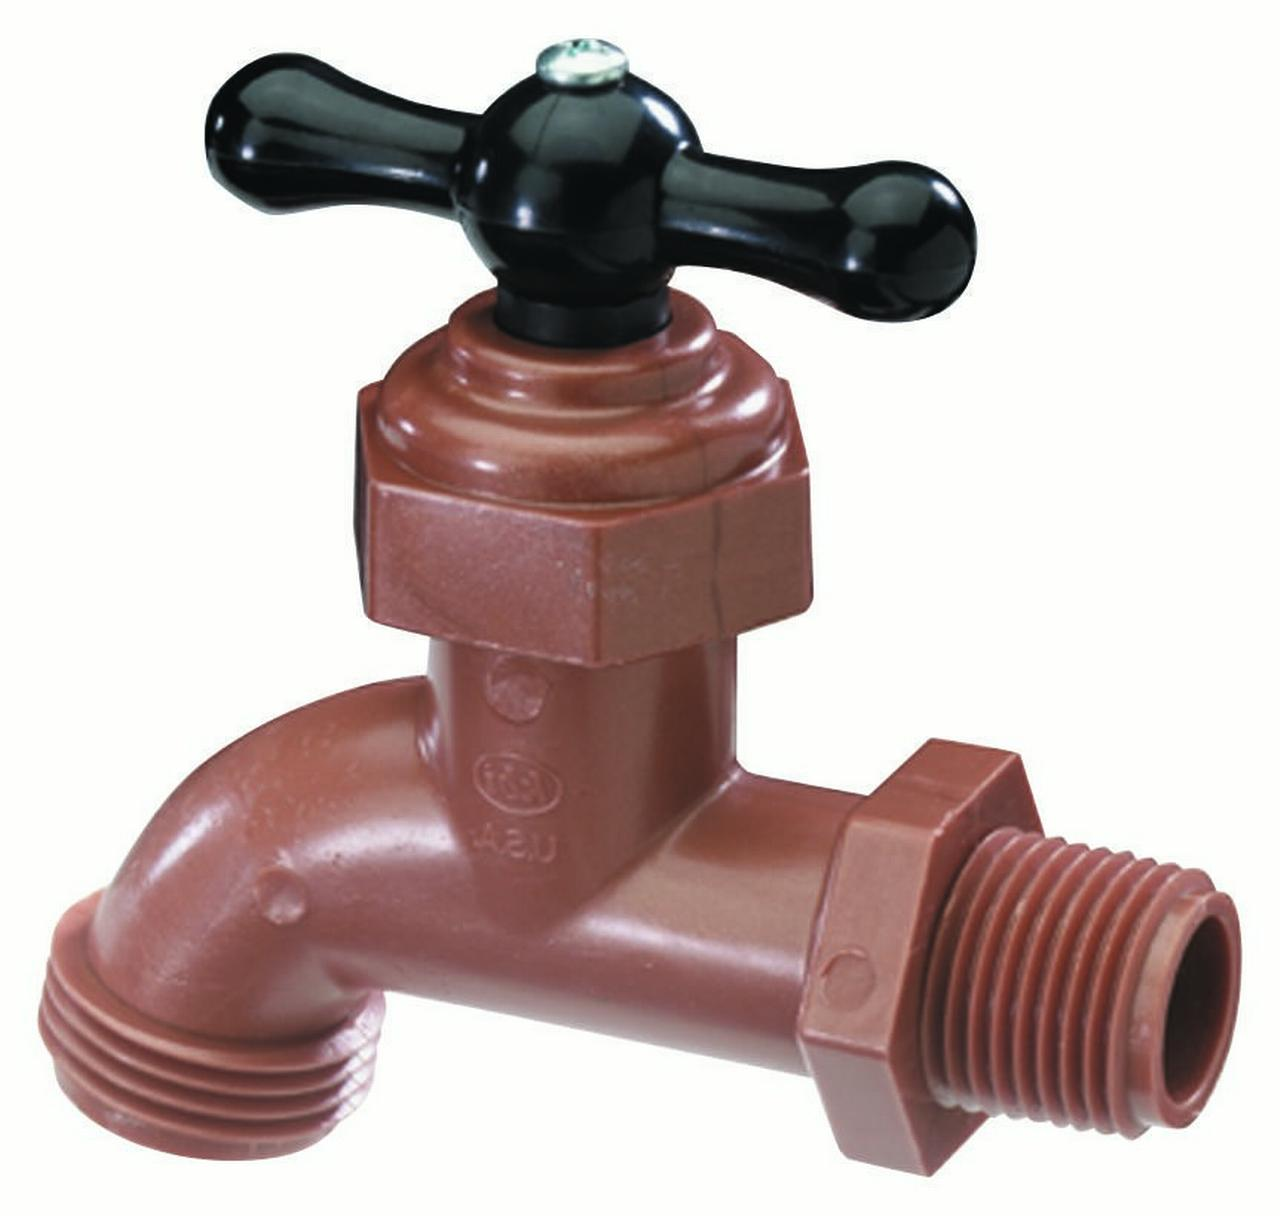 Celcon SFT-0500-T Hose Bibb 1/2 in MIPT Inlet 1/2 in Male Hose Thread Outlet 150 psi Bronze